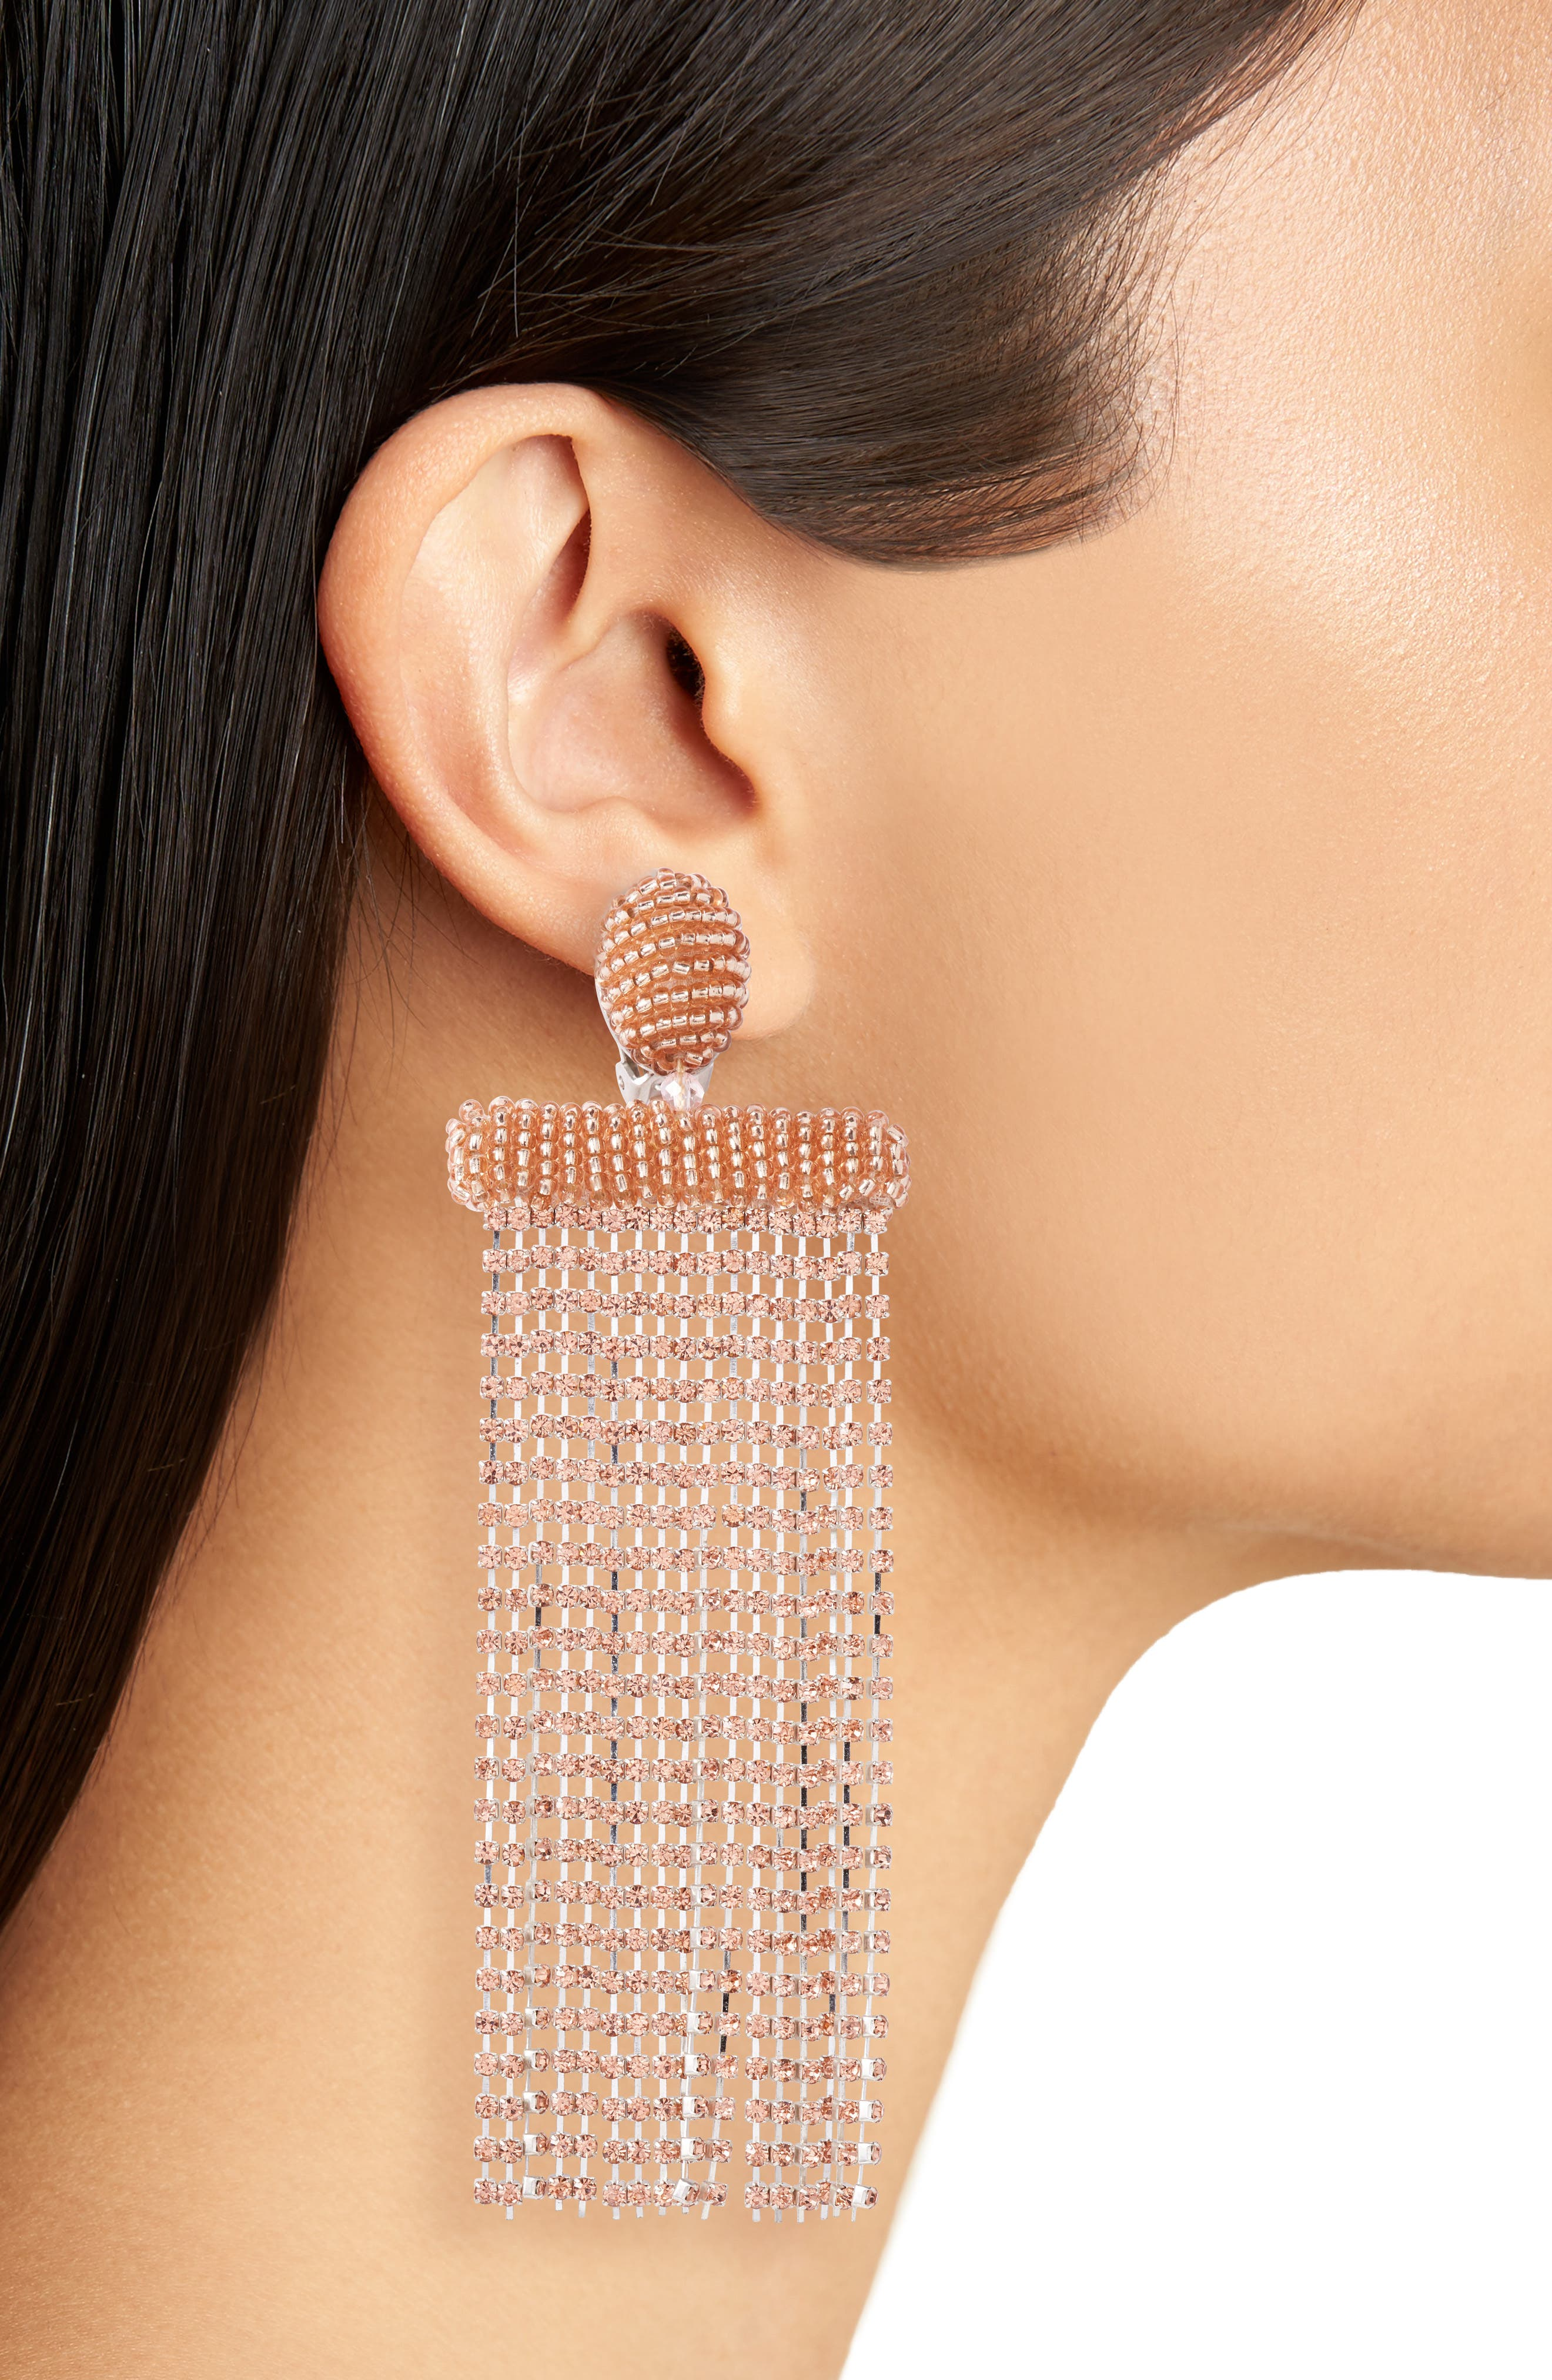 Waterfall Crystal Earrings,                             Alternate thumbnail 2, color,                             650